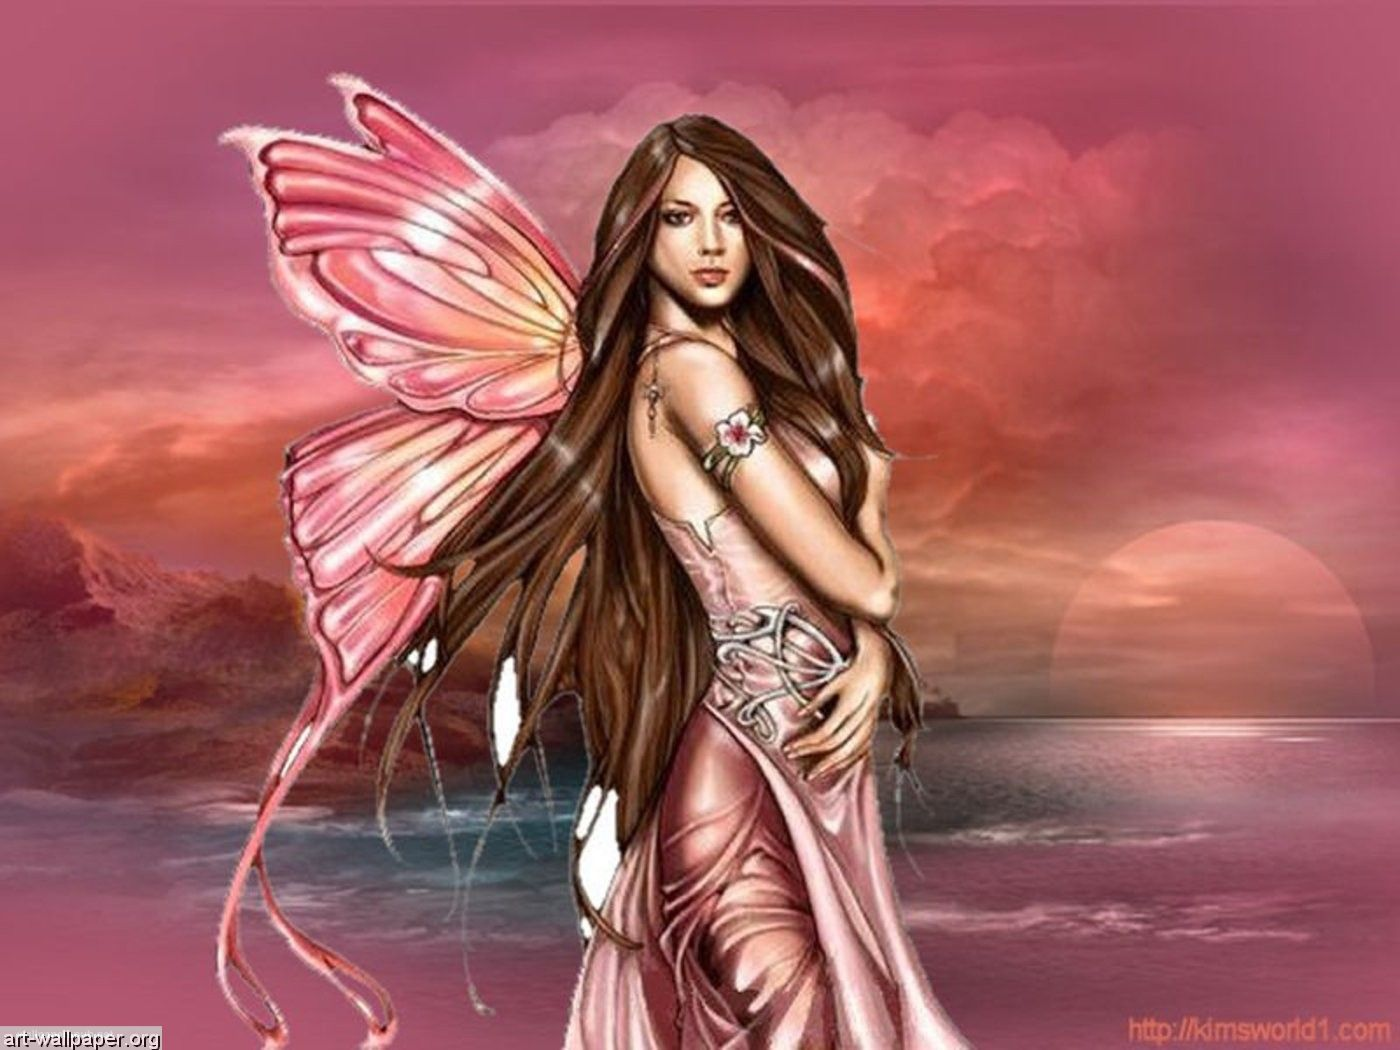 Fantasy Fairy Art Pink Or Red Fairy 1920625 Hd